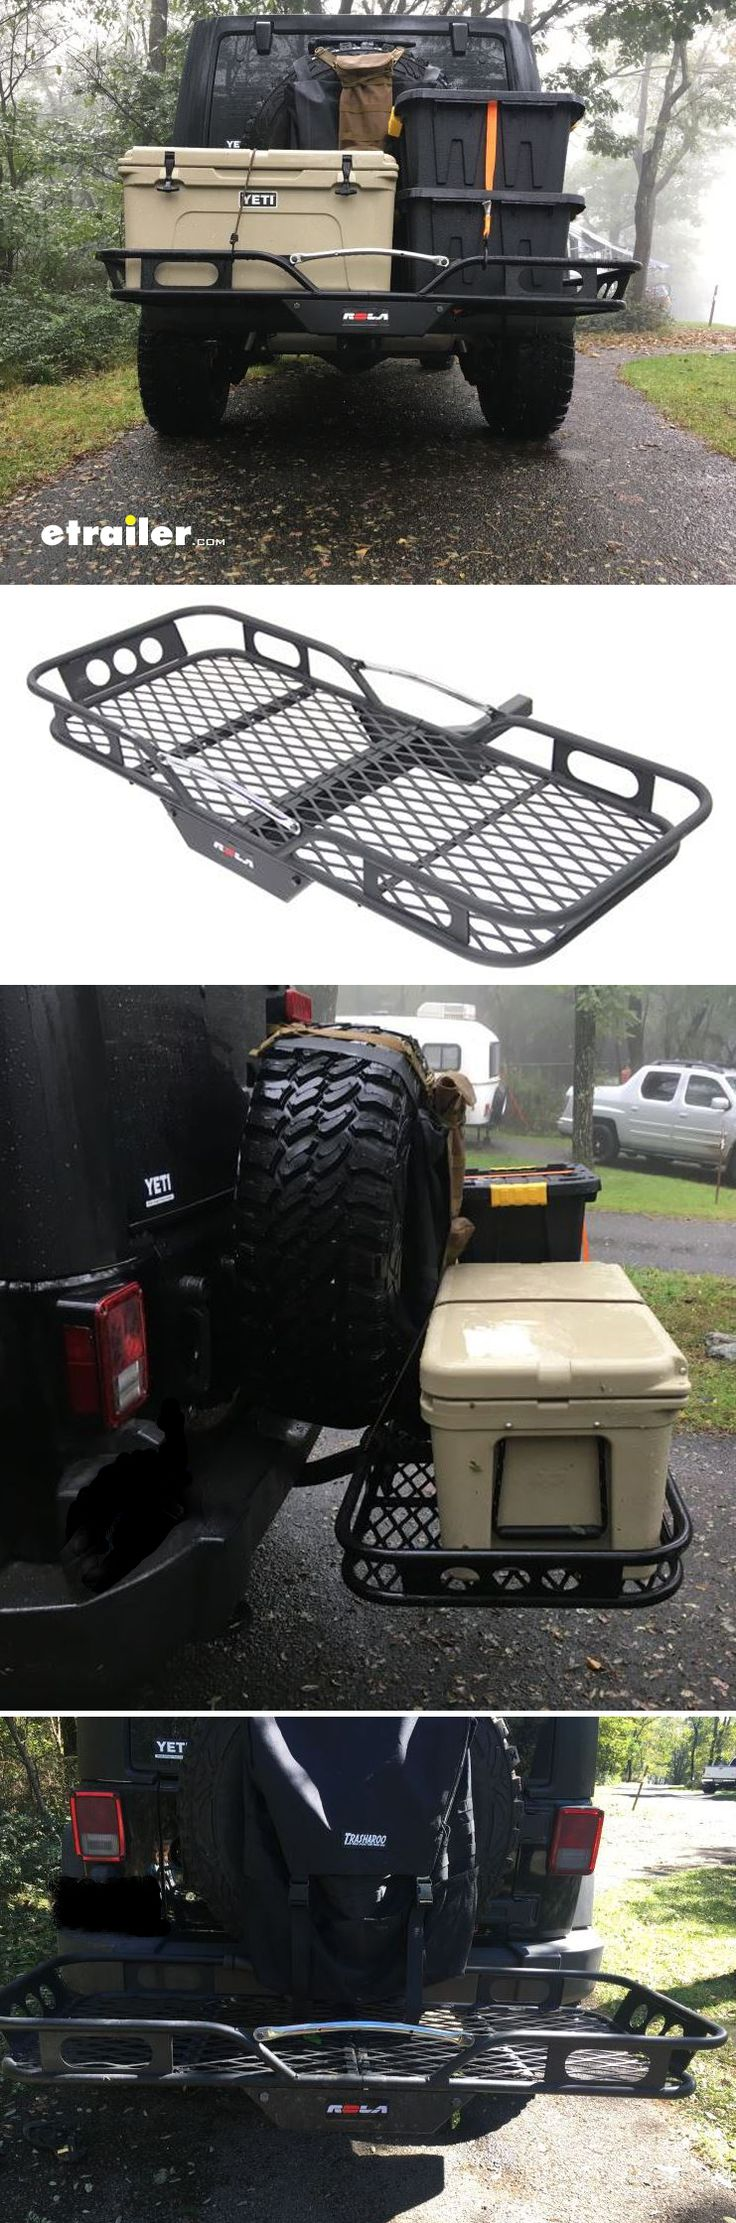 "Tired of throwing gear on the roof rack struggling to get it down and worrying about clearance issues or being top heavy? (every Jeepers off-roading nightmare). You need a rack with low center of gravity, that won't affect ground clearance and most importantly fits your 35"" spare. Rola hitch rack is the answer!"